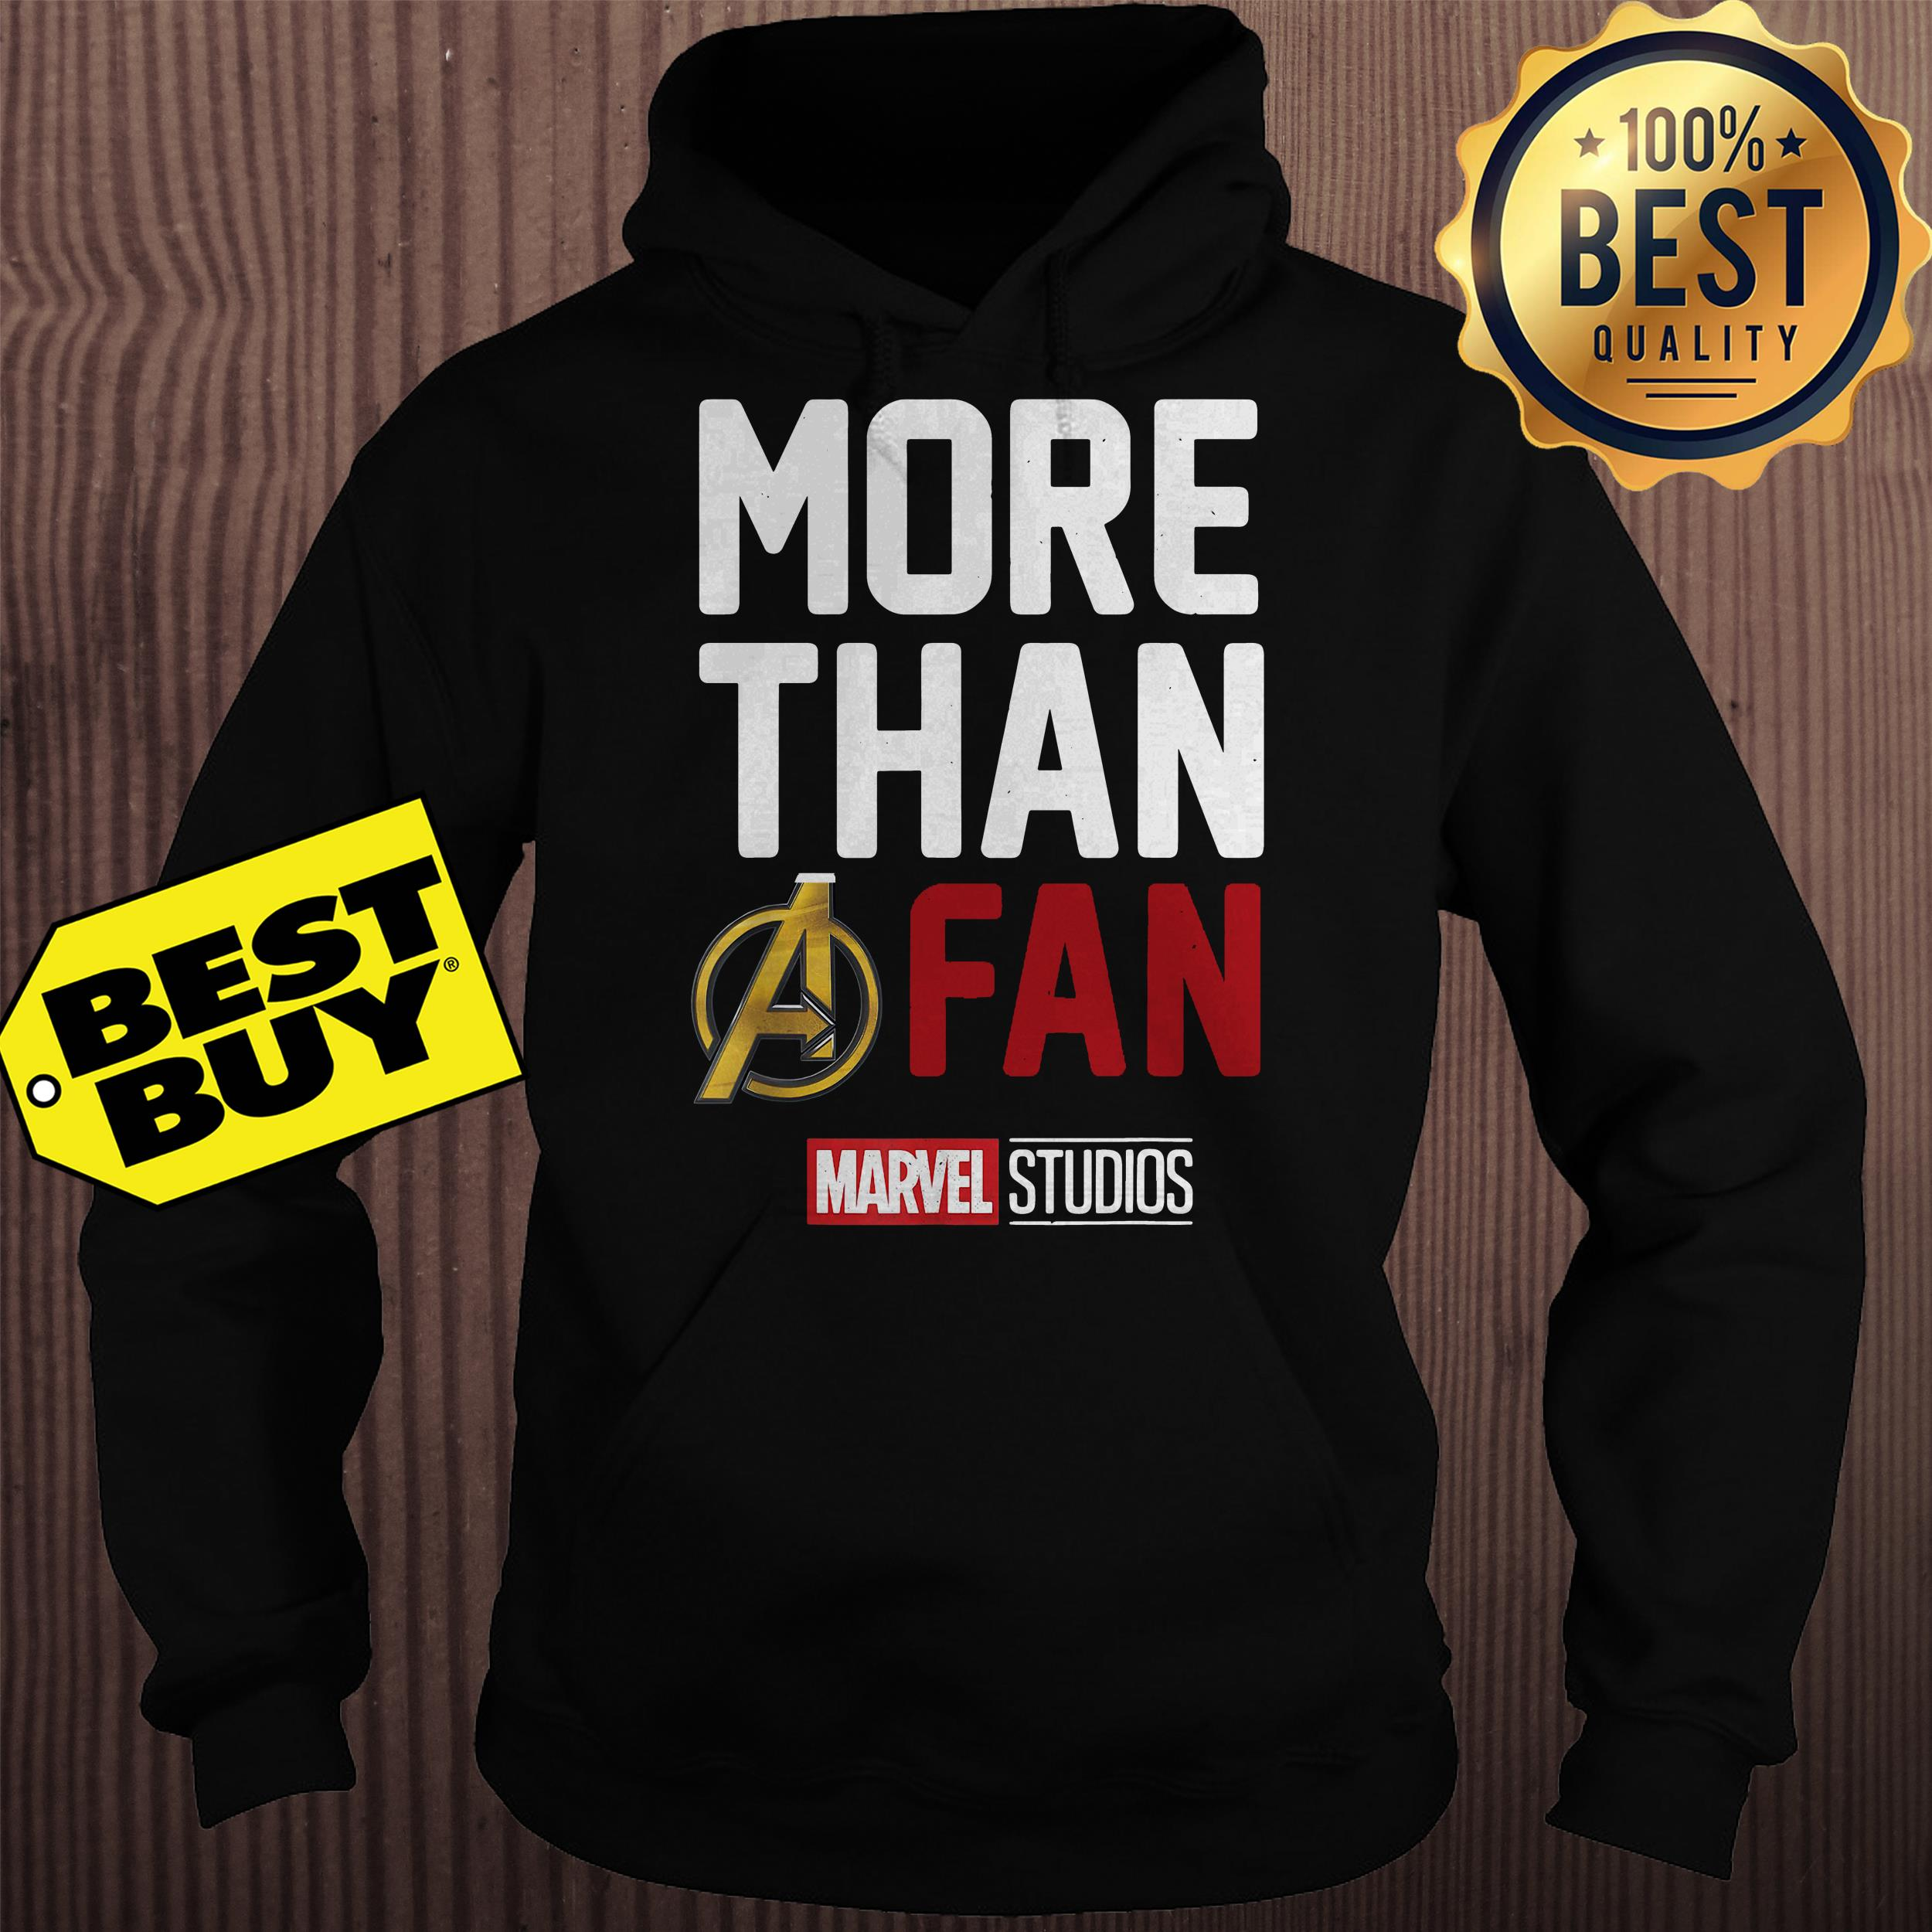 Avengers Endgame Marvel Studios More Than A Fan 2019 Graphic hoodie